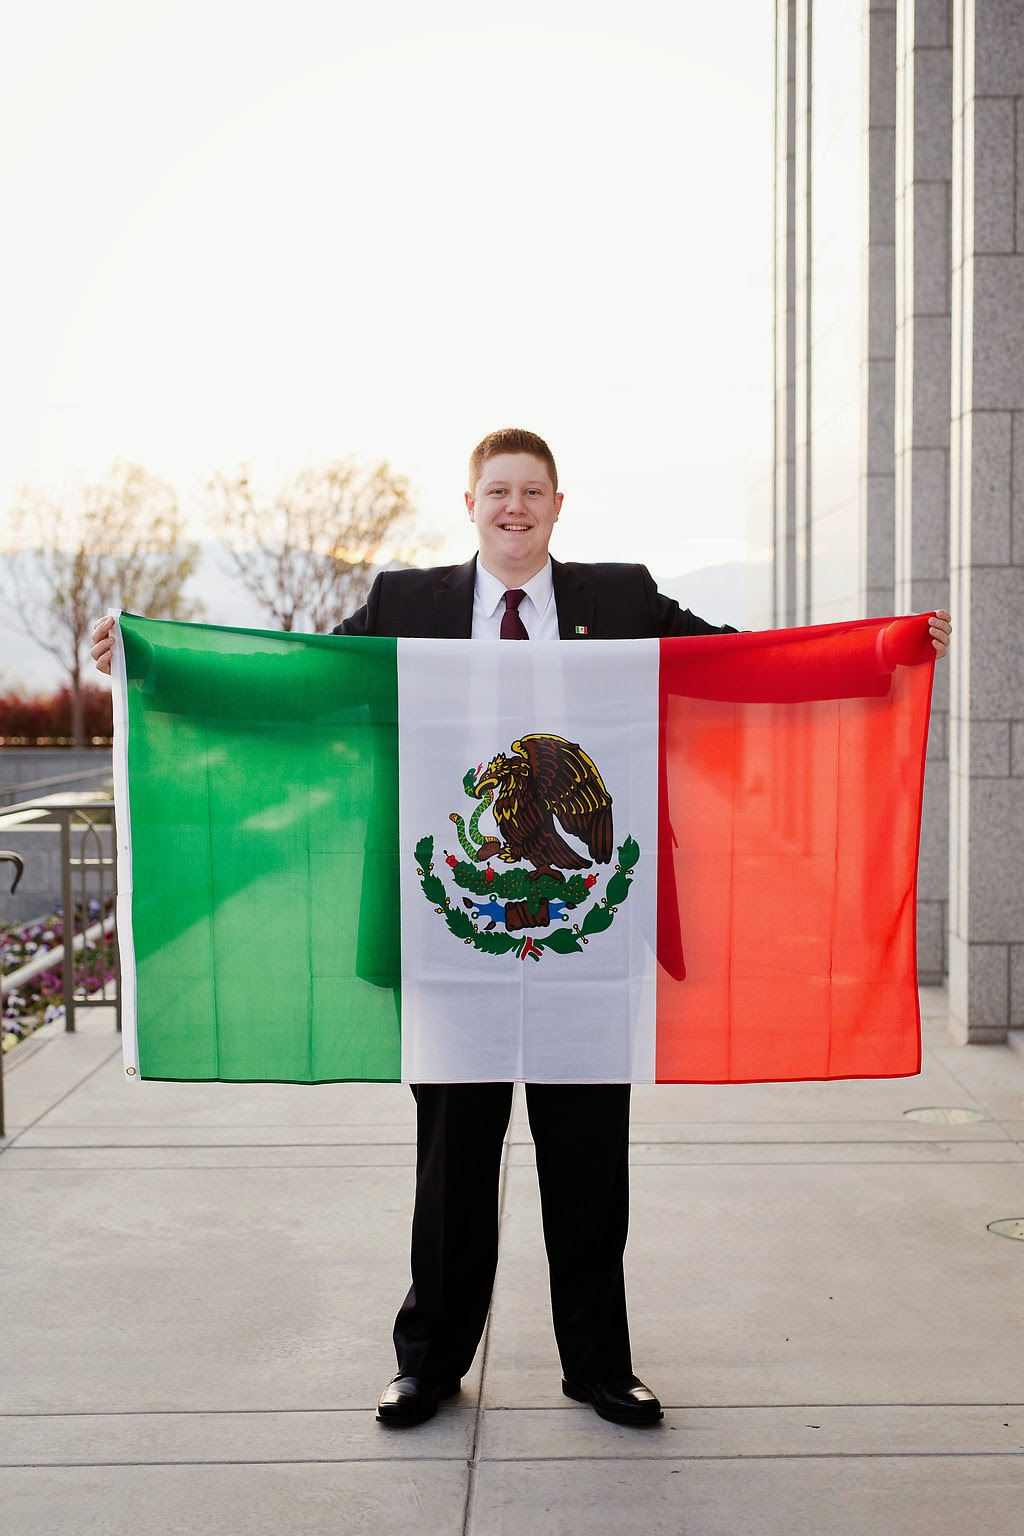 Elder Spencer Stockman